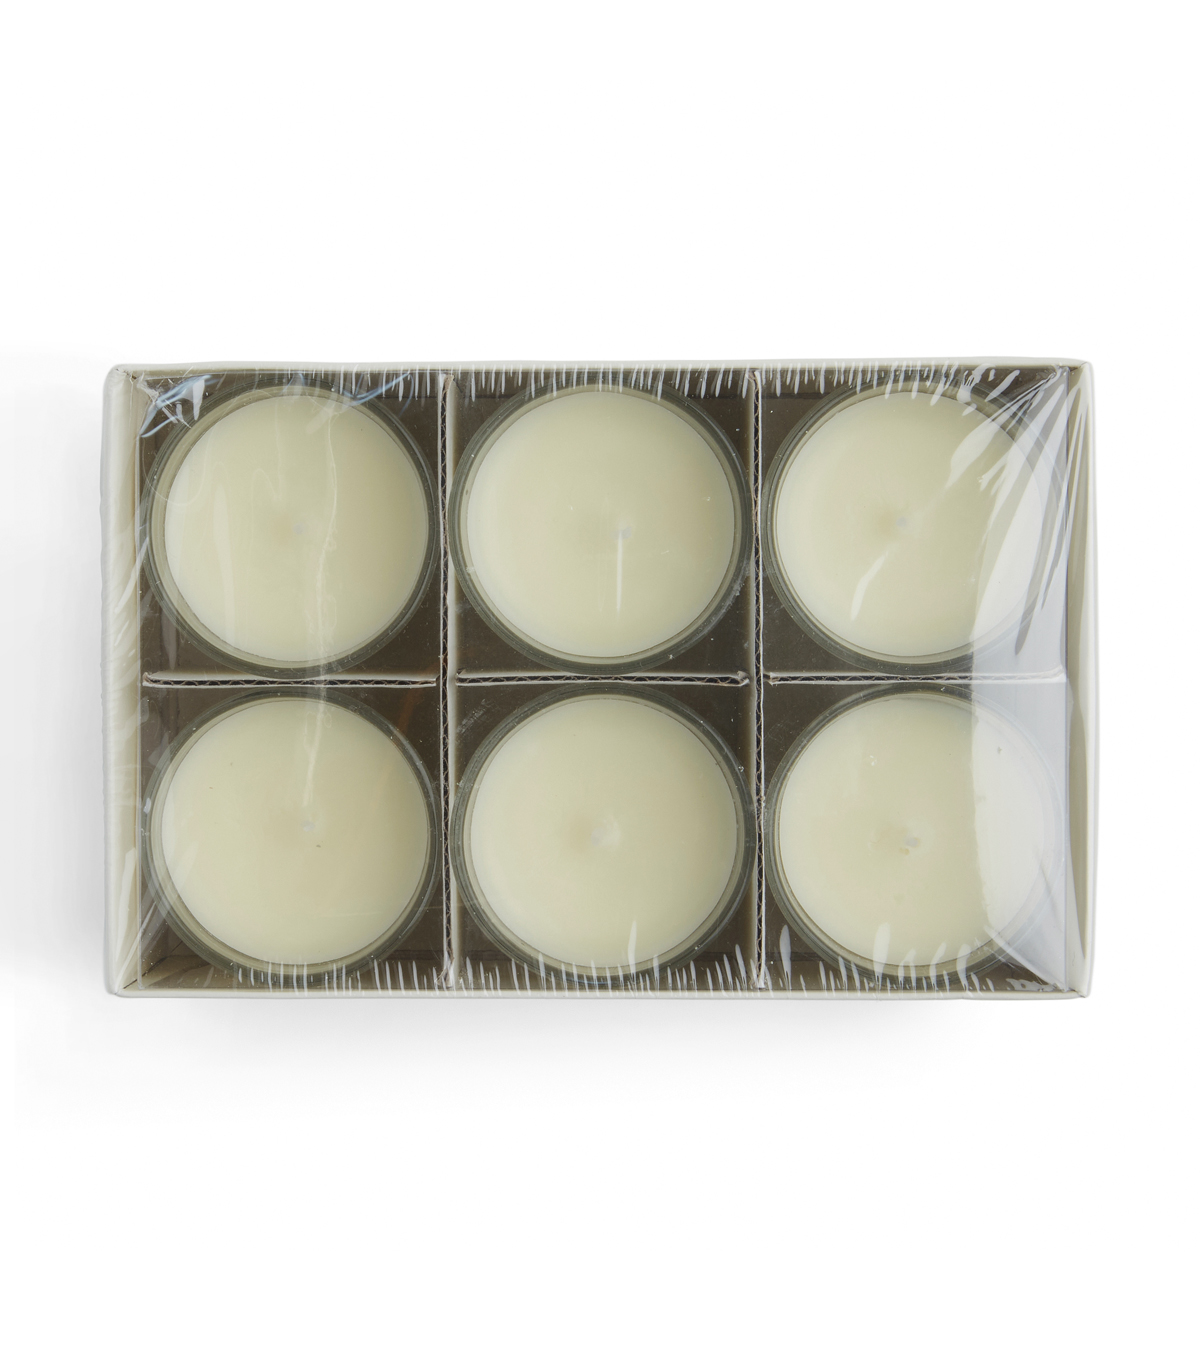 Hudson 43™ Candle & Light Collection 6pk Unscented Glass Accent Candles-Ivory